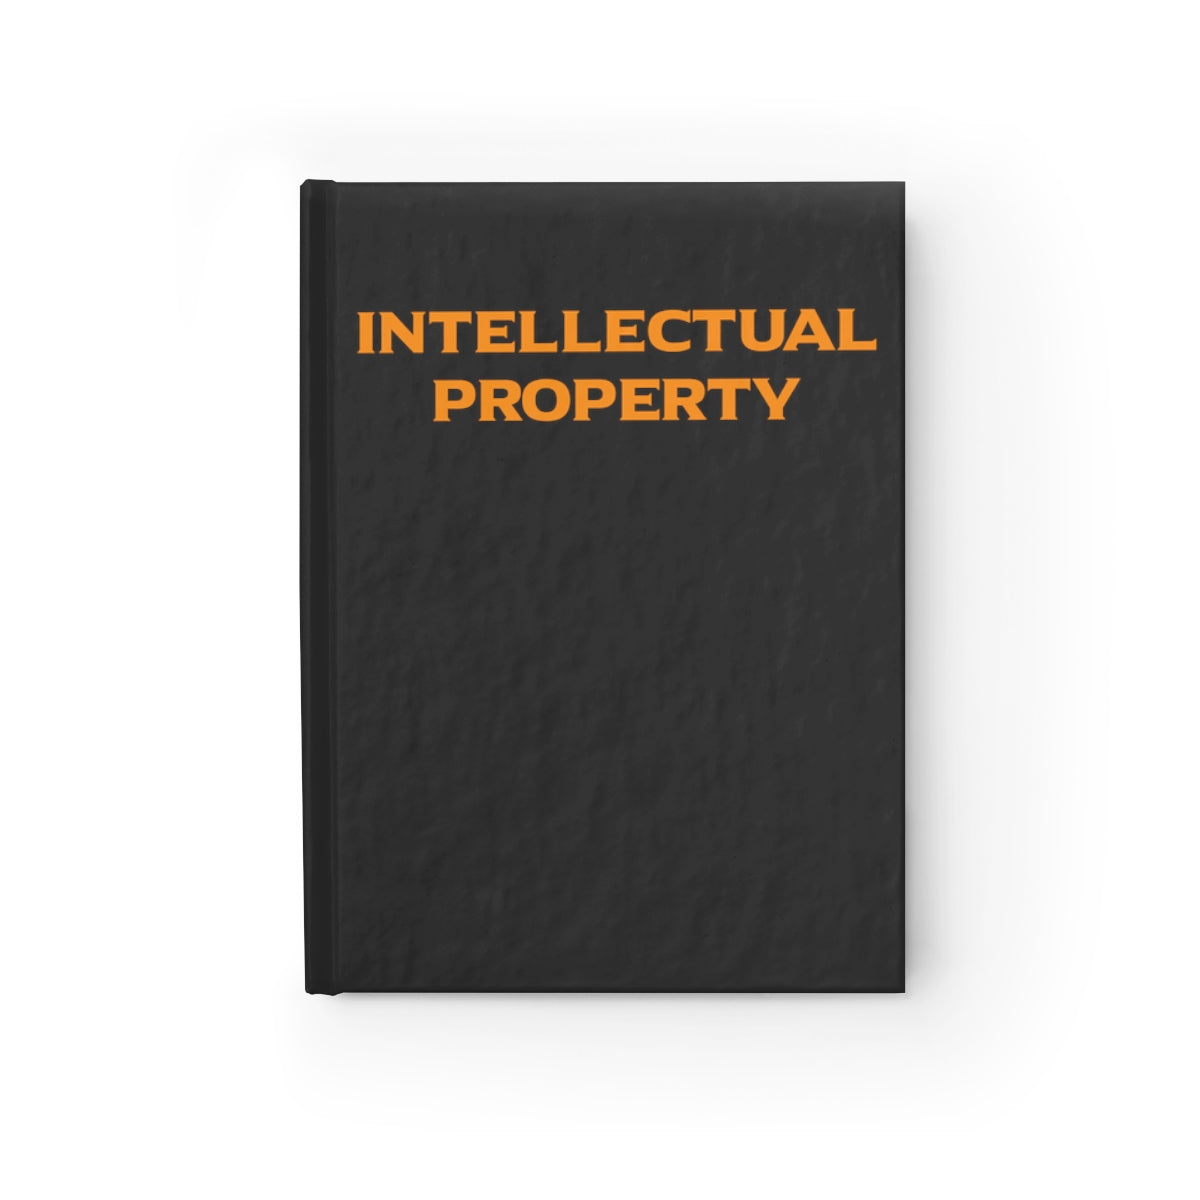 Intellectual Property (Blank)